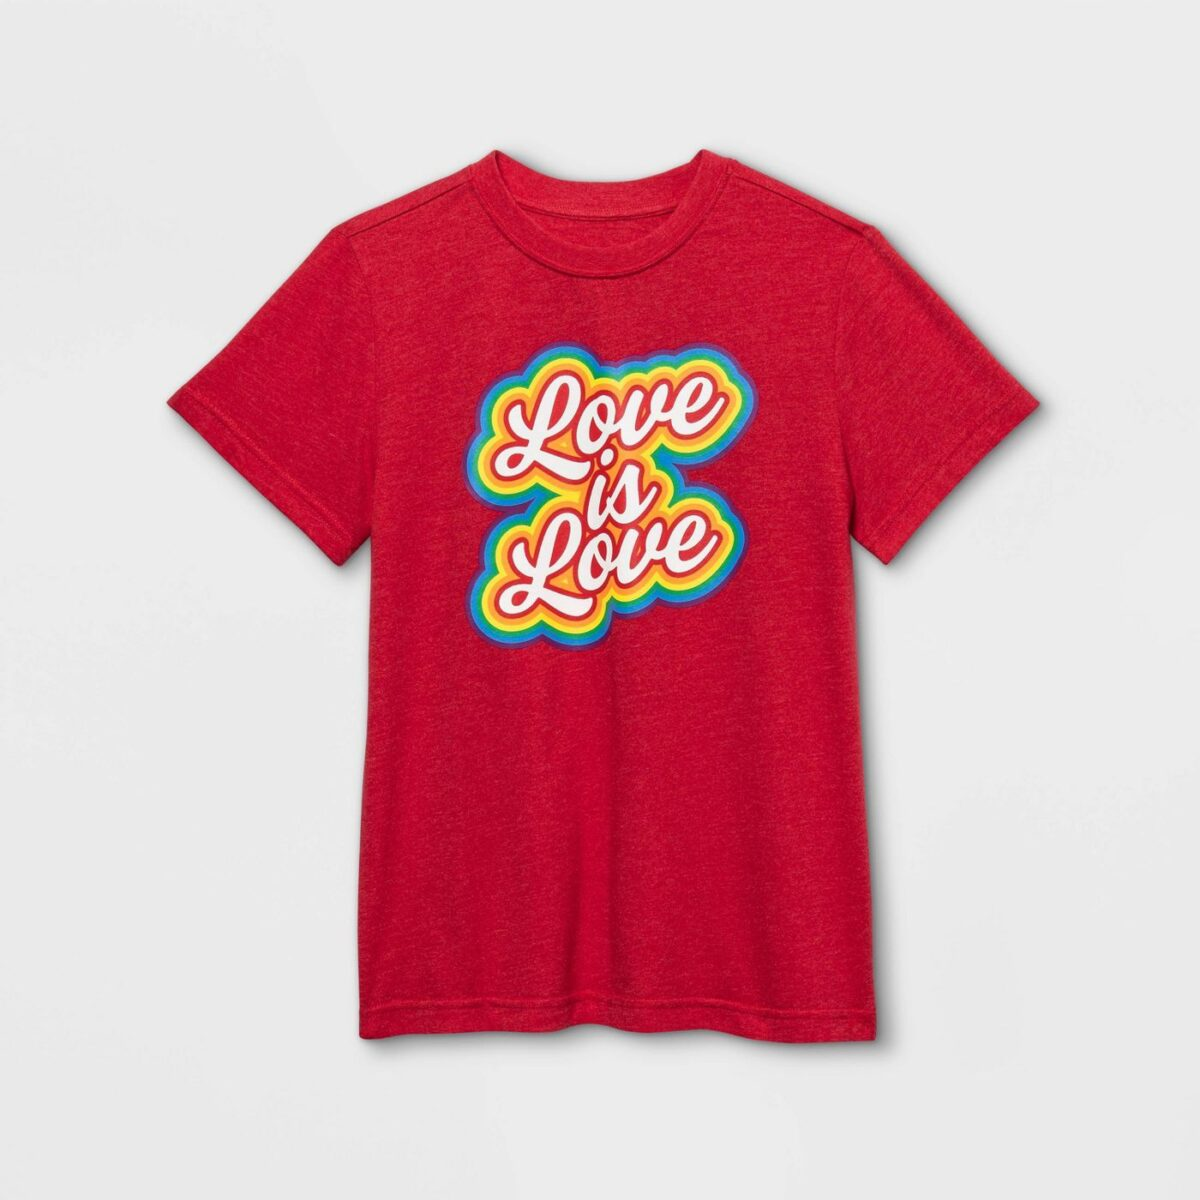 Pride Gender Inclusive Kids' 'Love is Love' Short Sleeve Graphic T-Shirt - Red